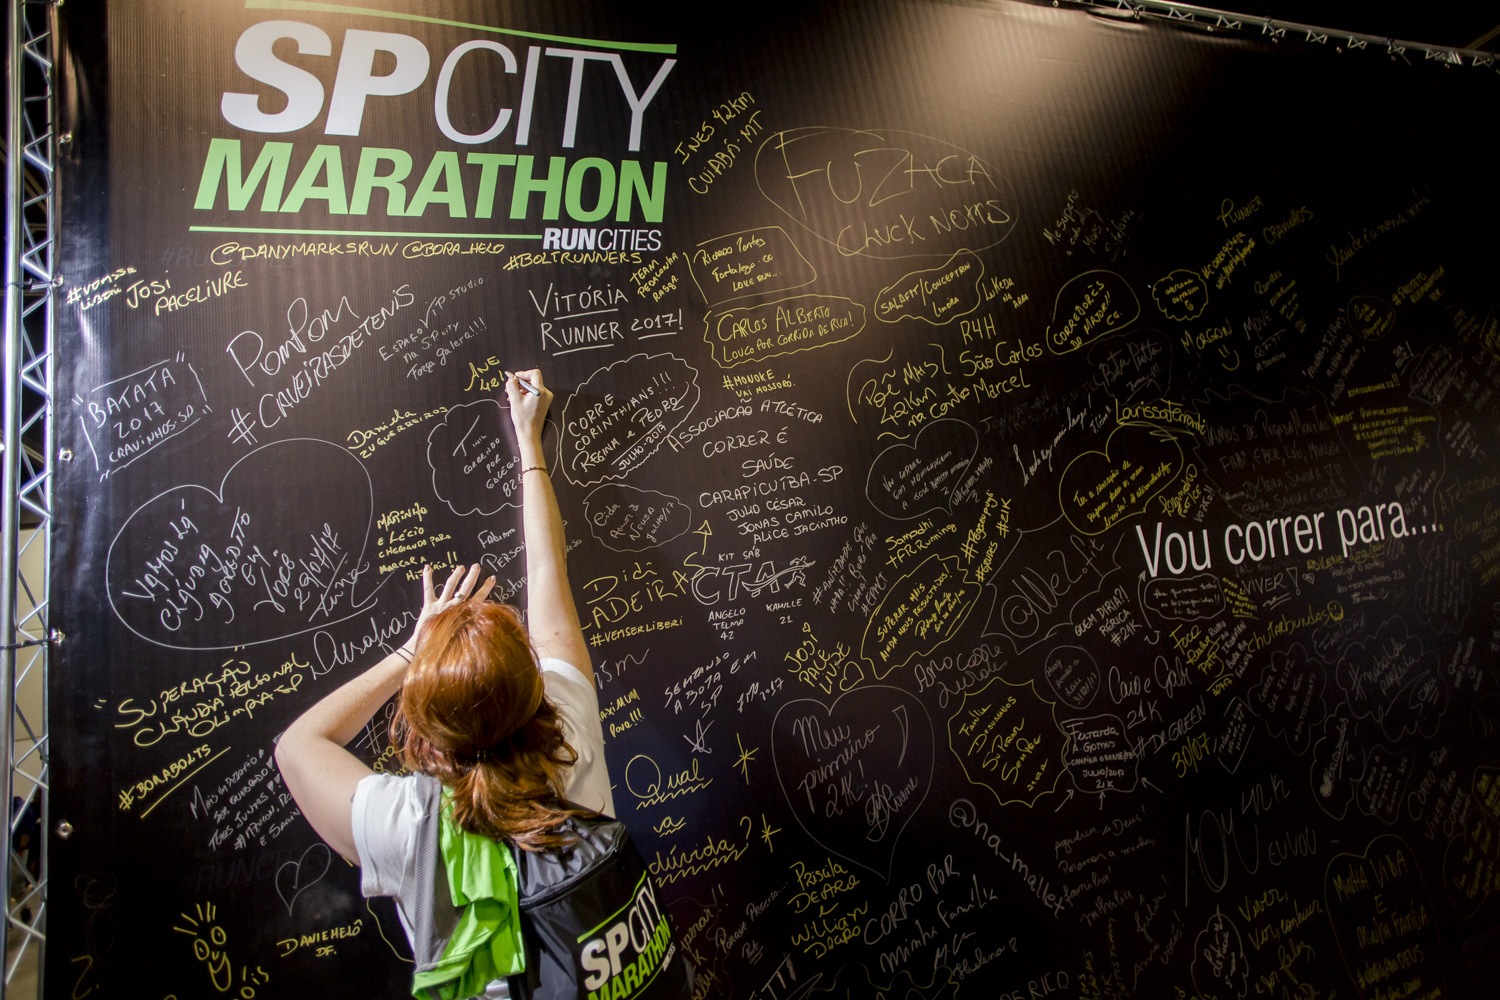 EXPO SP City Marathon-525